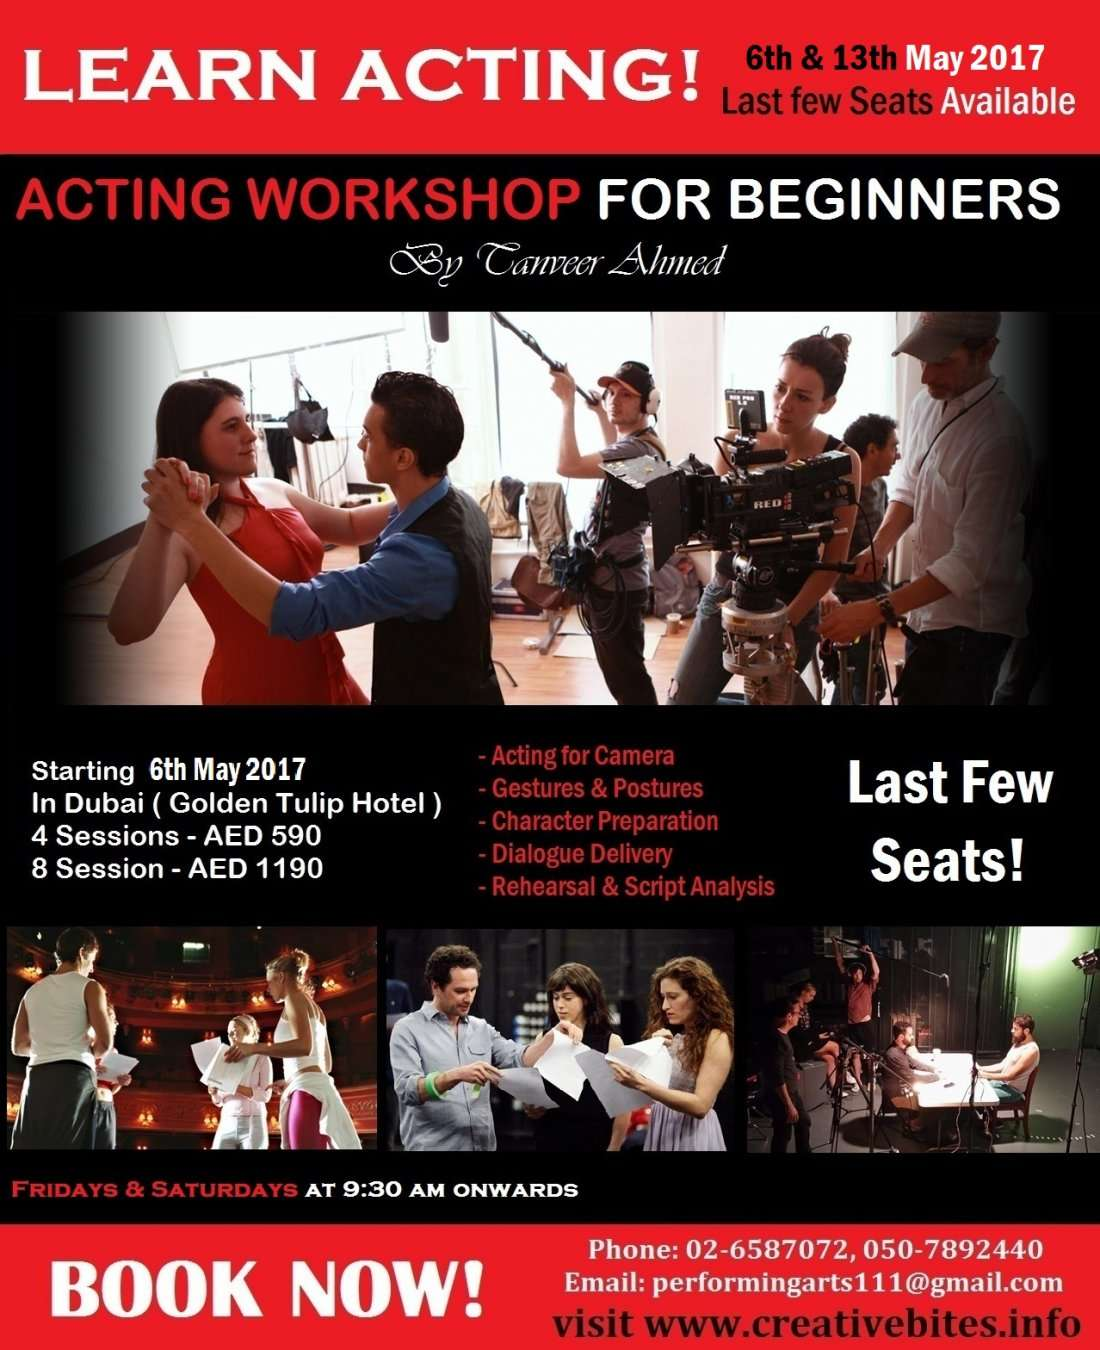 Acting Workshop for Beginners - Dubai